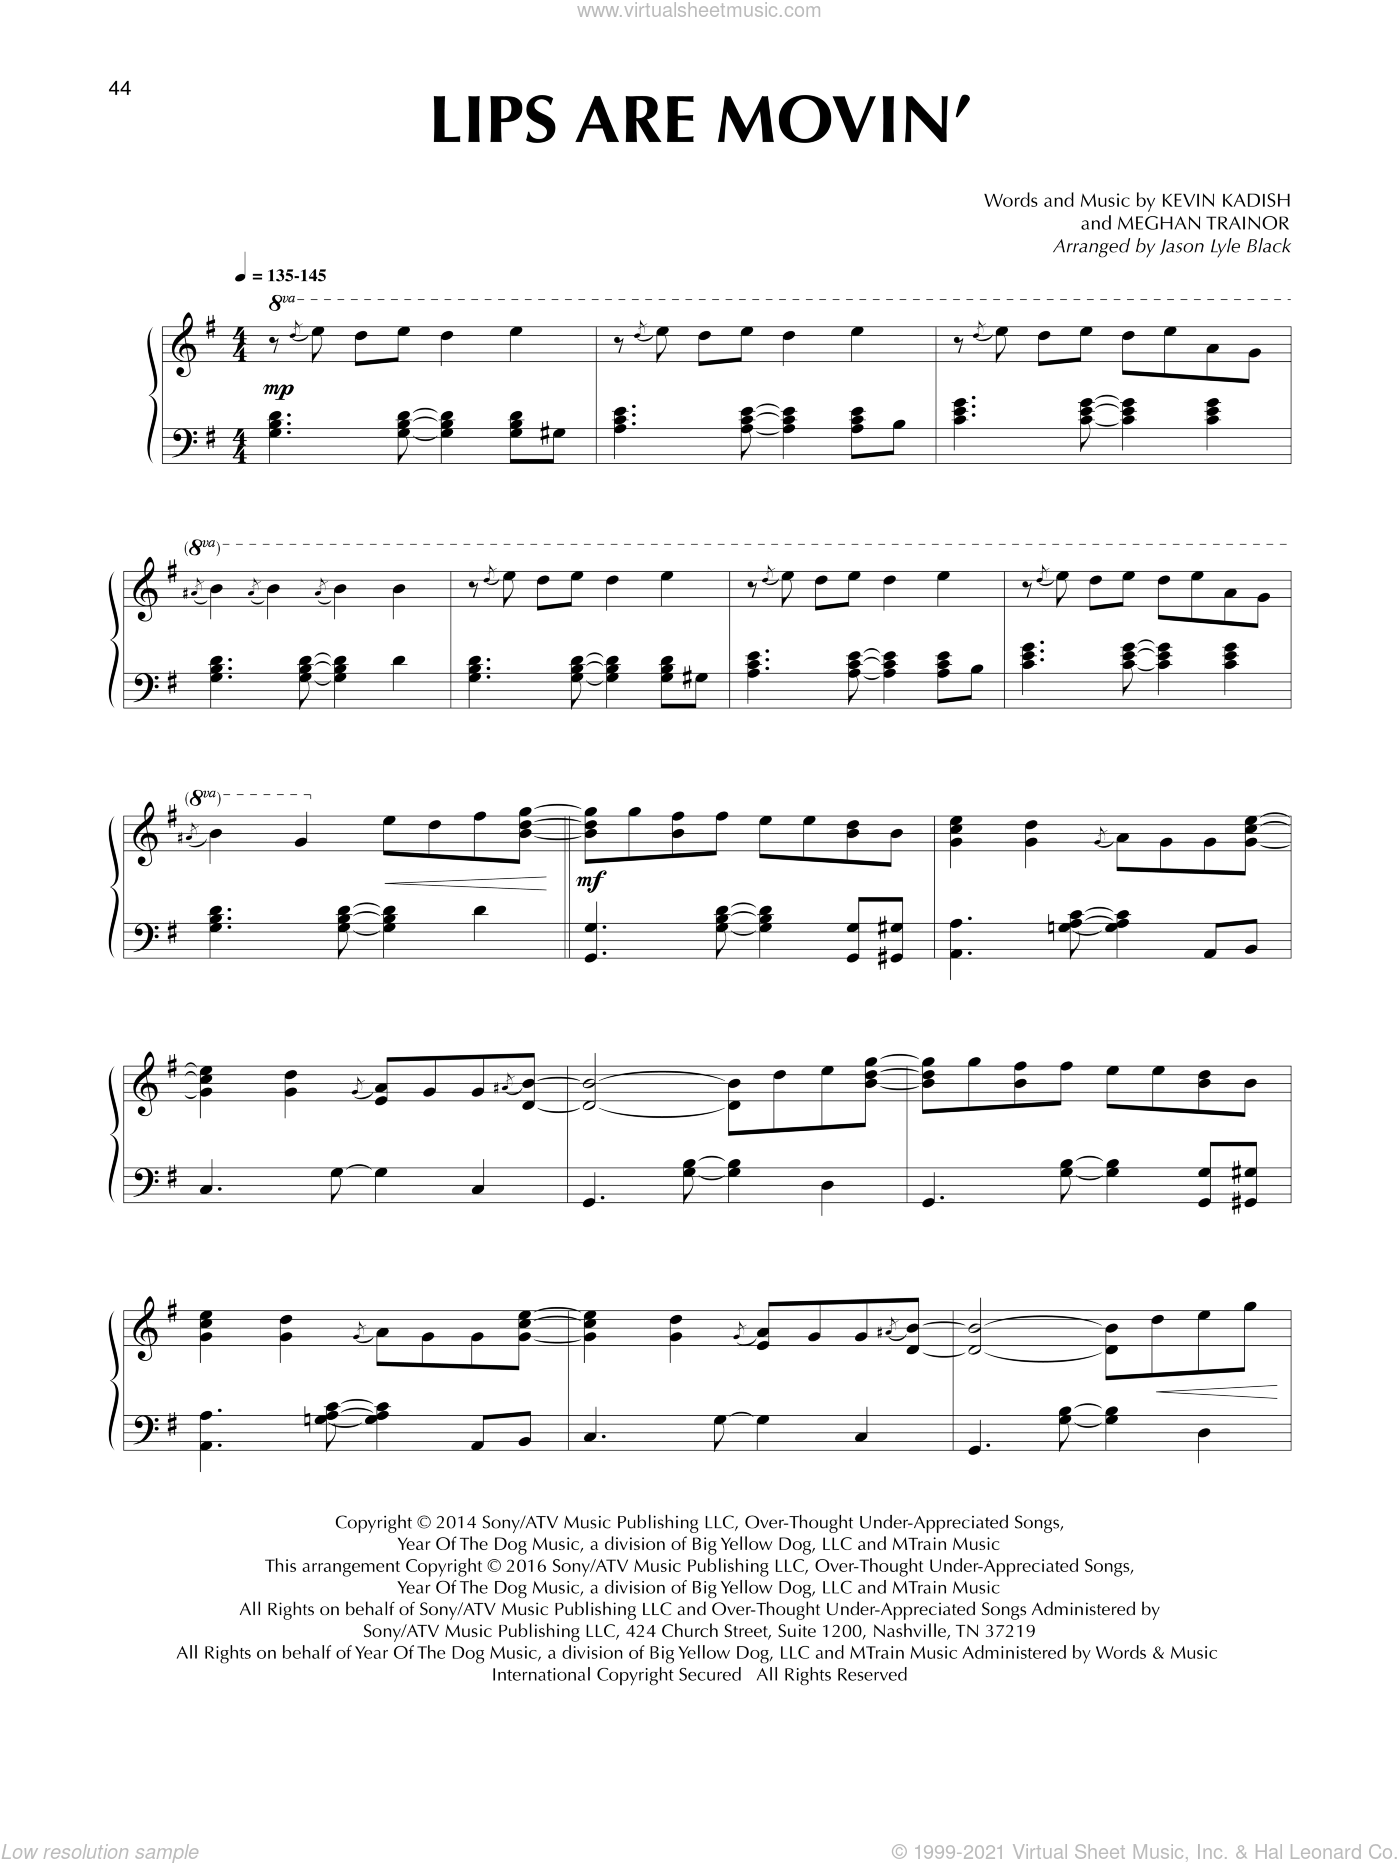 Lips Are Movin' sheet music for piano solo by Meghan Trainor, Jason Lyle Black and Kevin Kadish, intermediate piano. Score Image Preview.